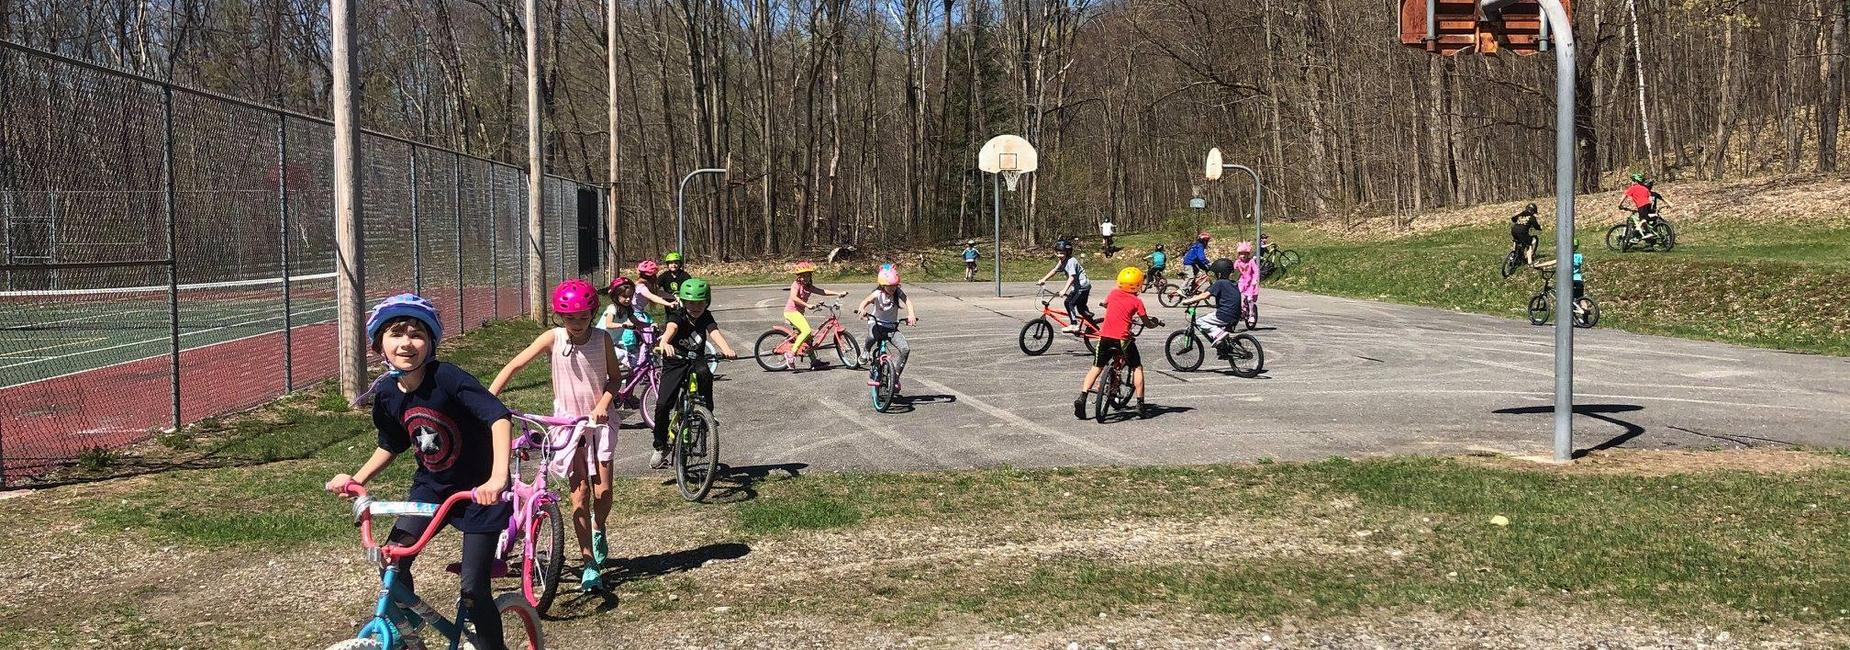 children riding bicycles on blacktop